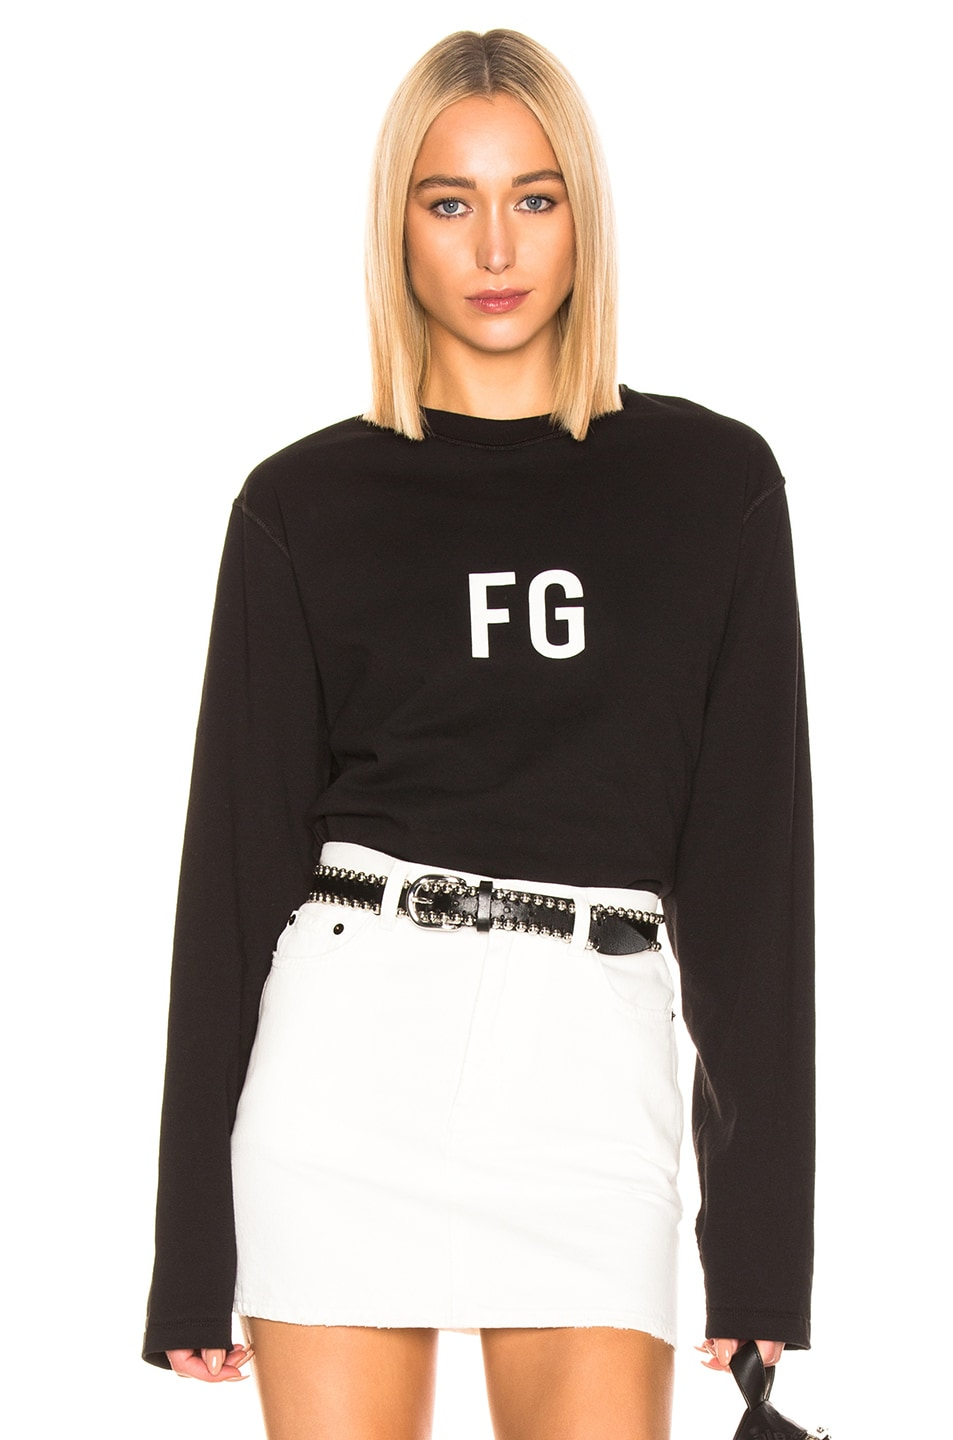 Image 1 of Fear of God Long Sleeve 'FG' Tee in Vintage Black